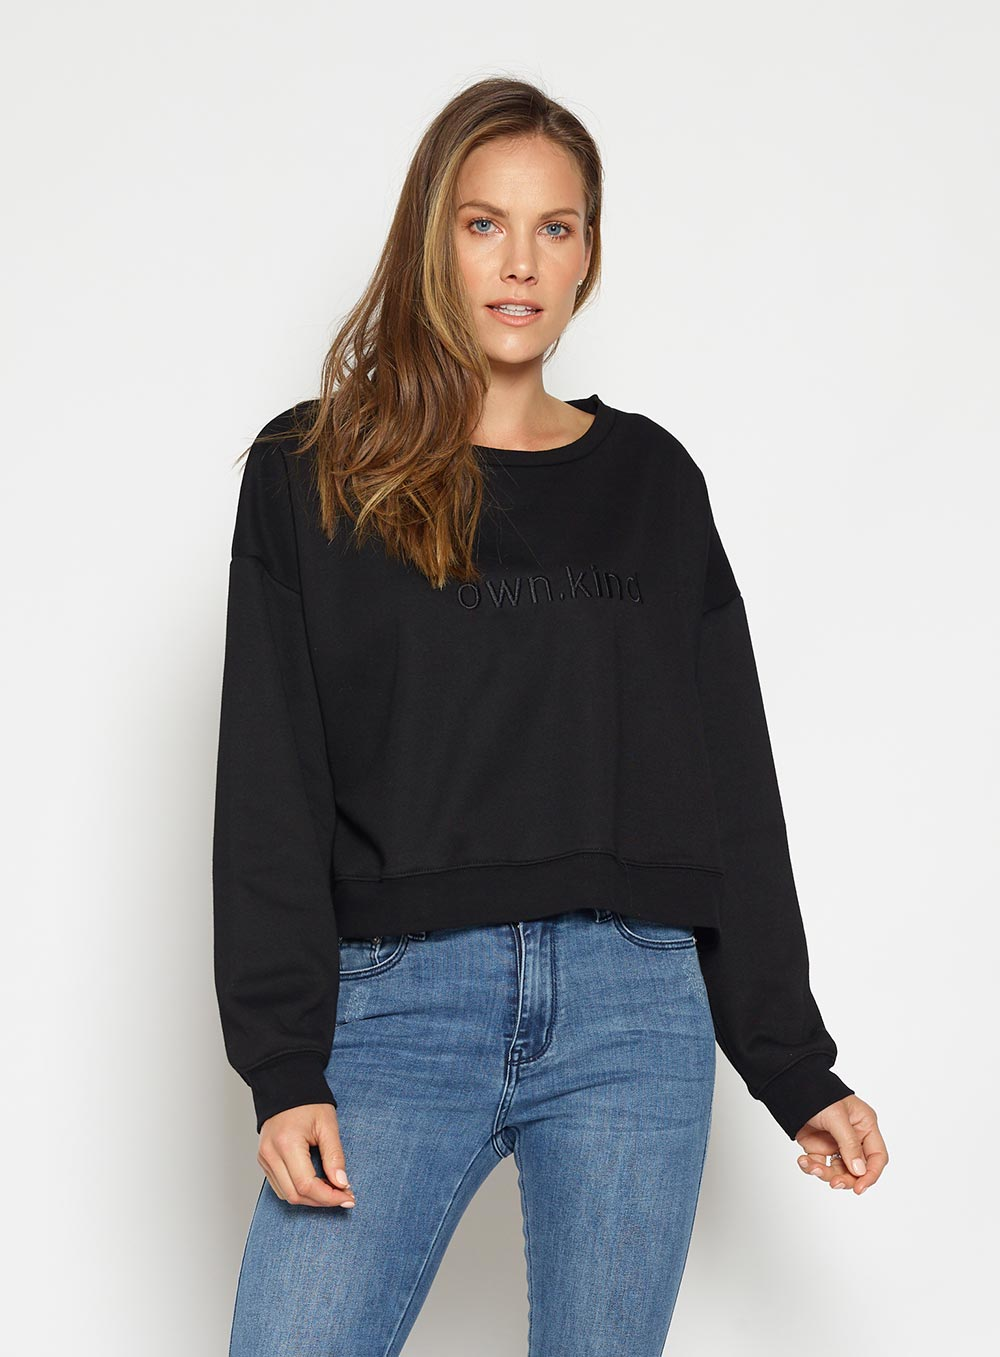 Own Kind Sweater-Black - Own Kind Australia